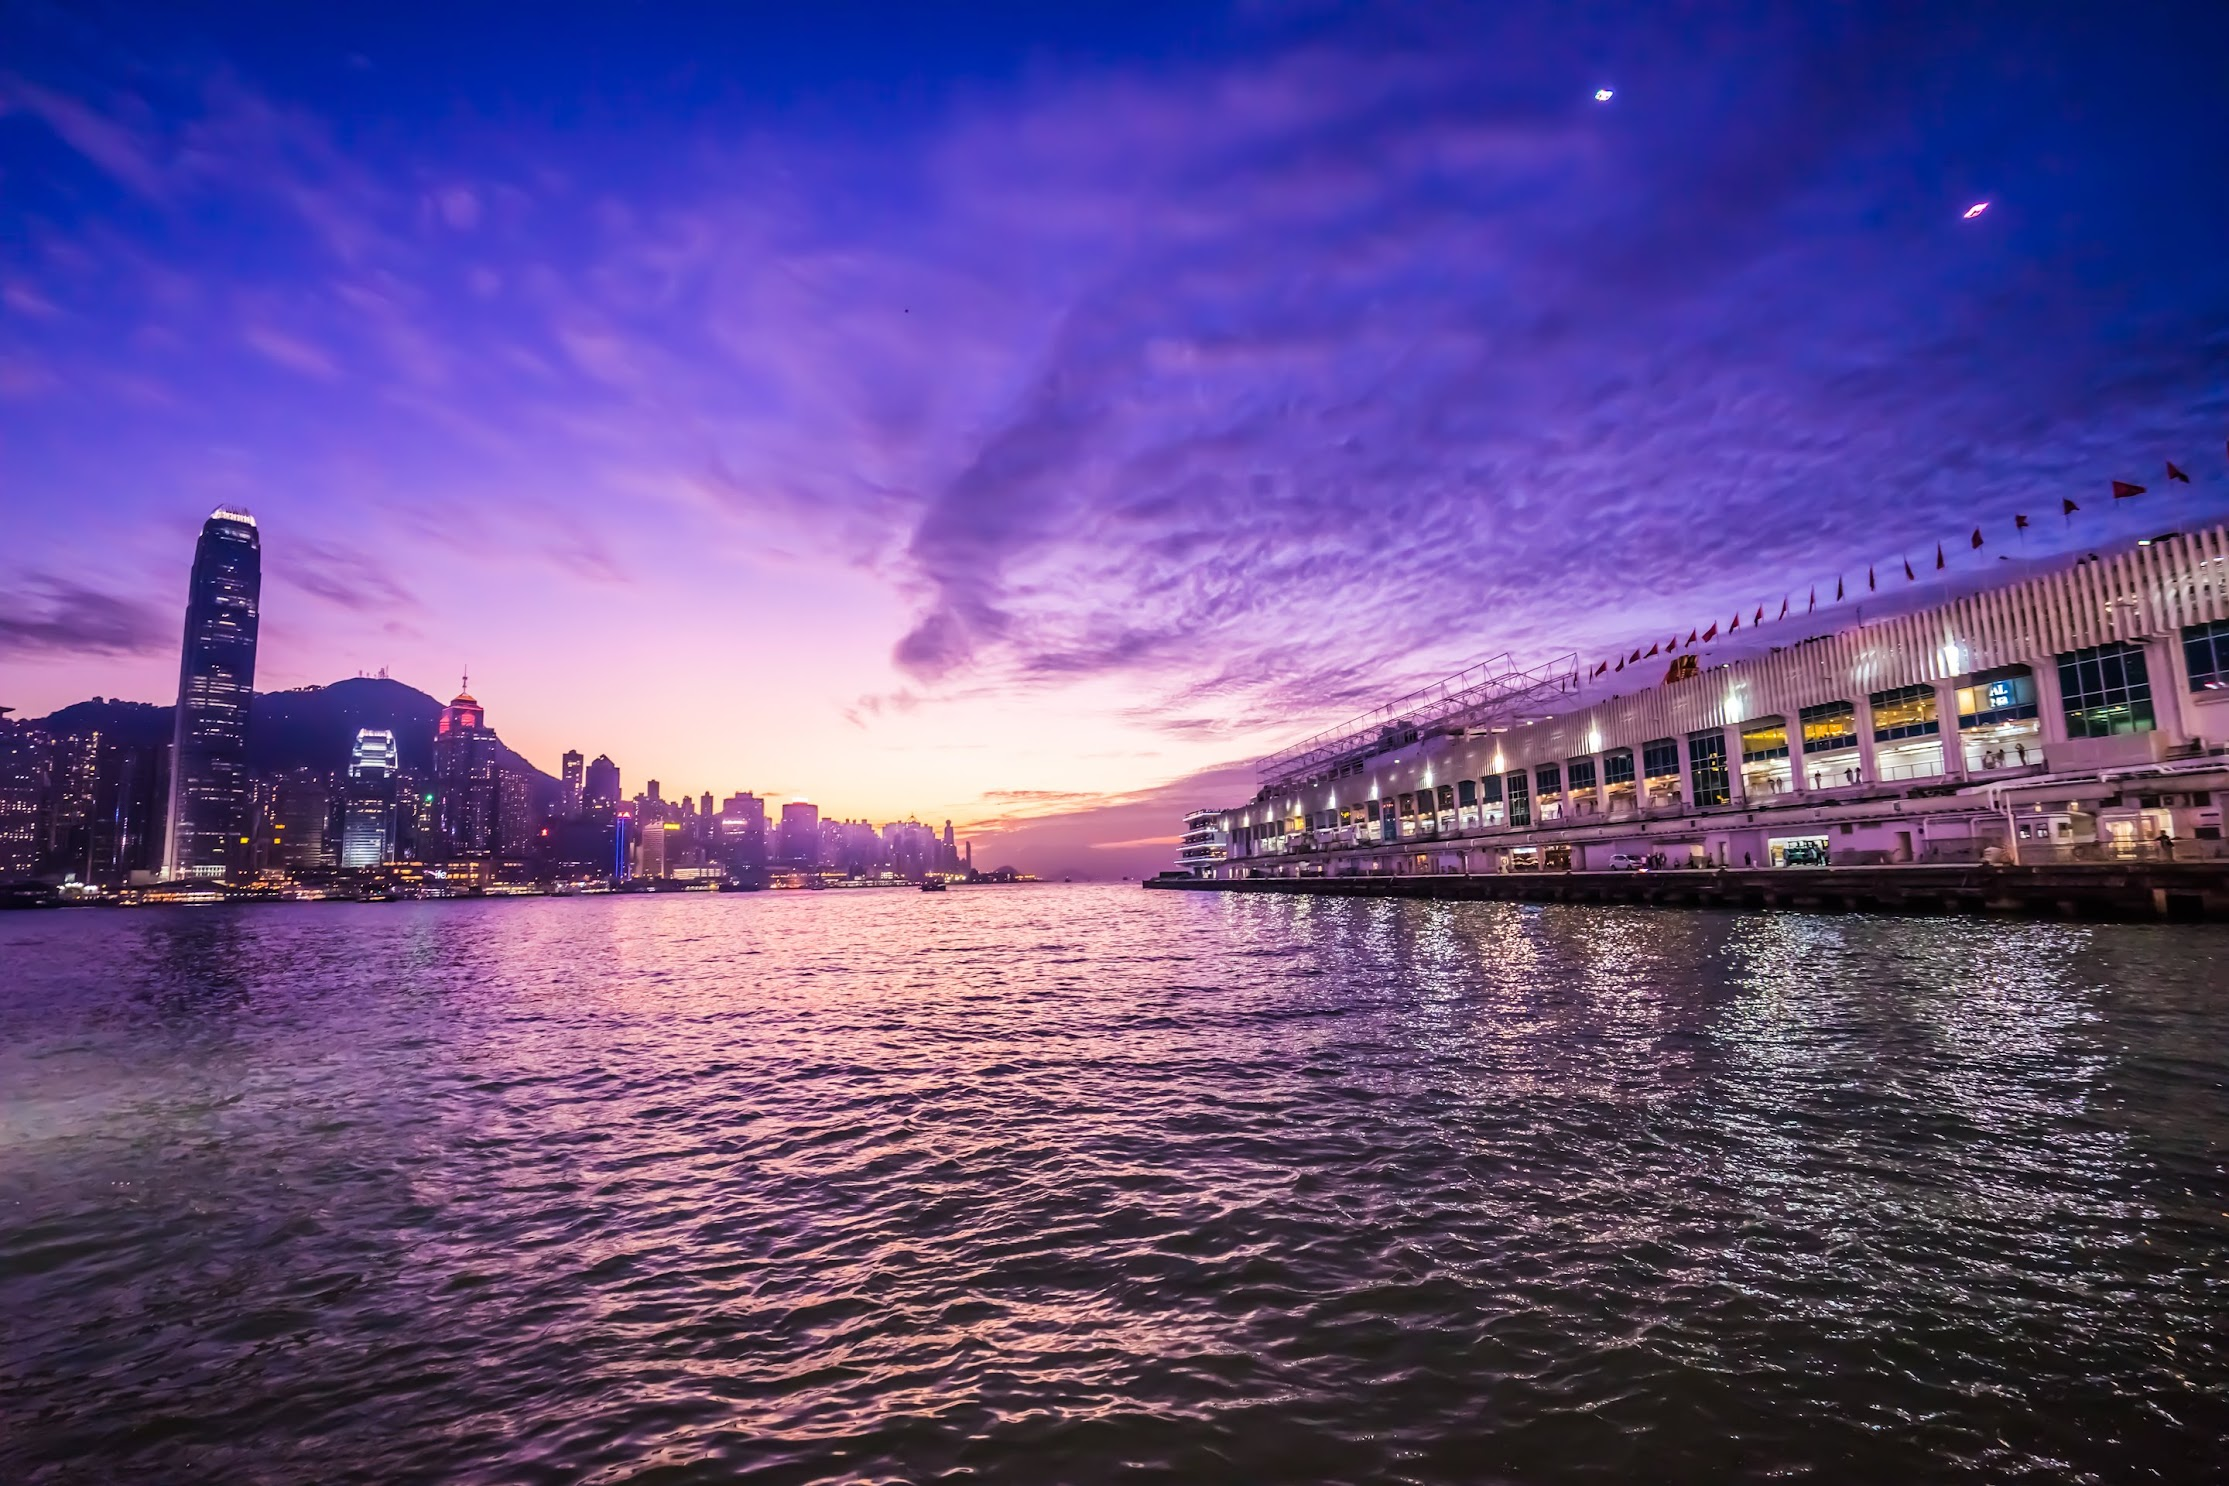 Hong Kong Tsim Sha Tsui evening view5